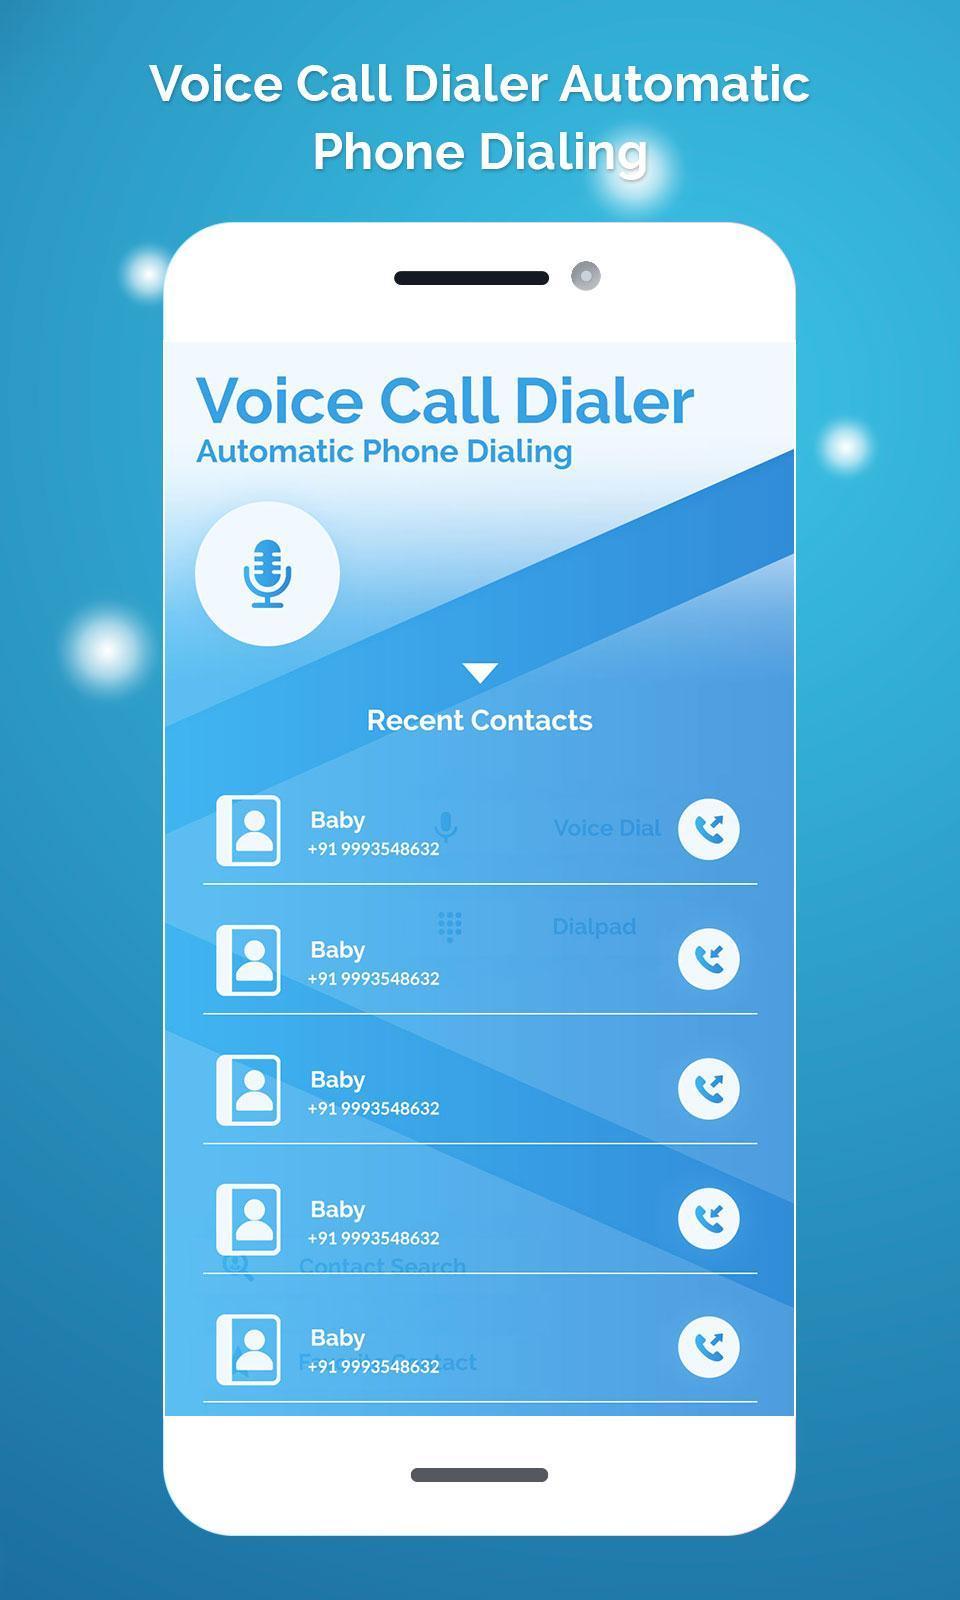 Voice Call Dialer Automatic Phone Dialing for Android - APK